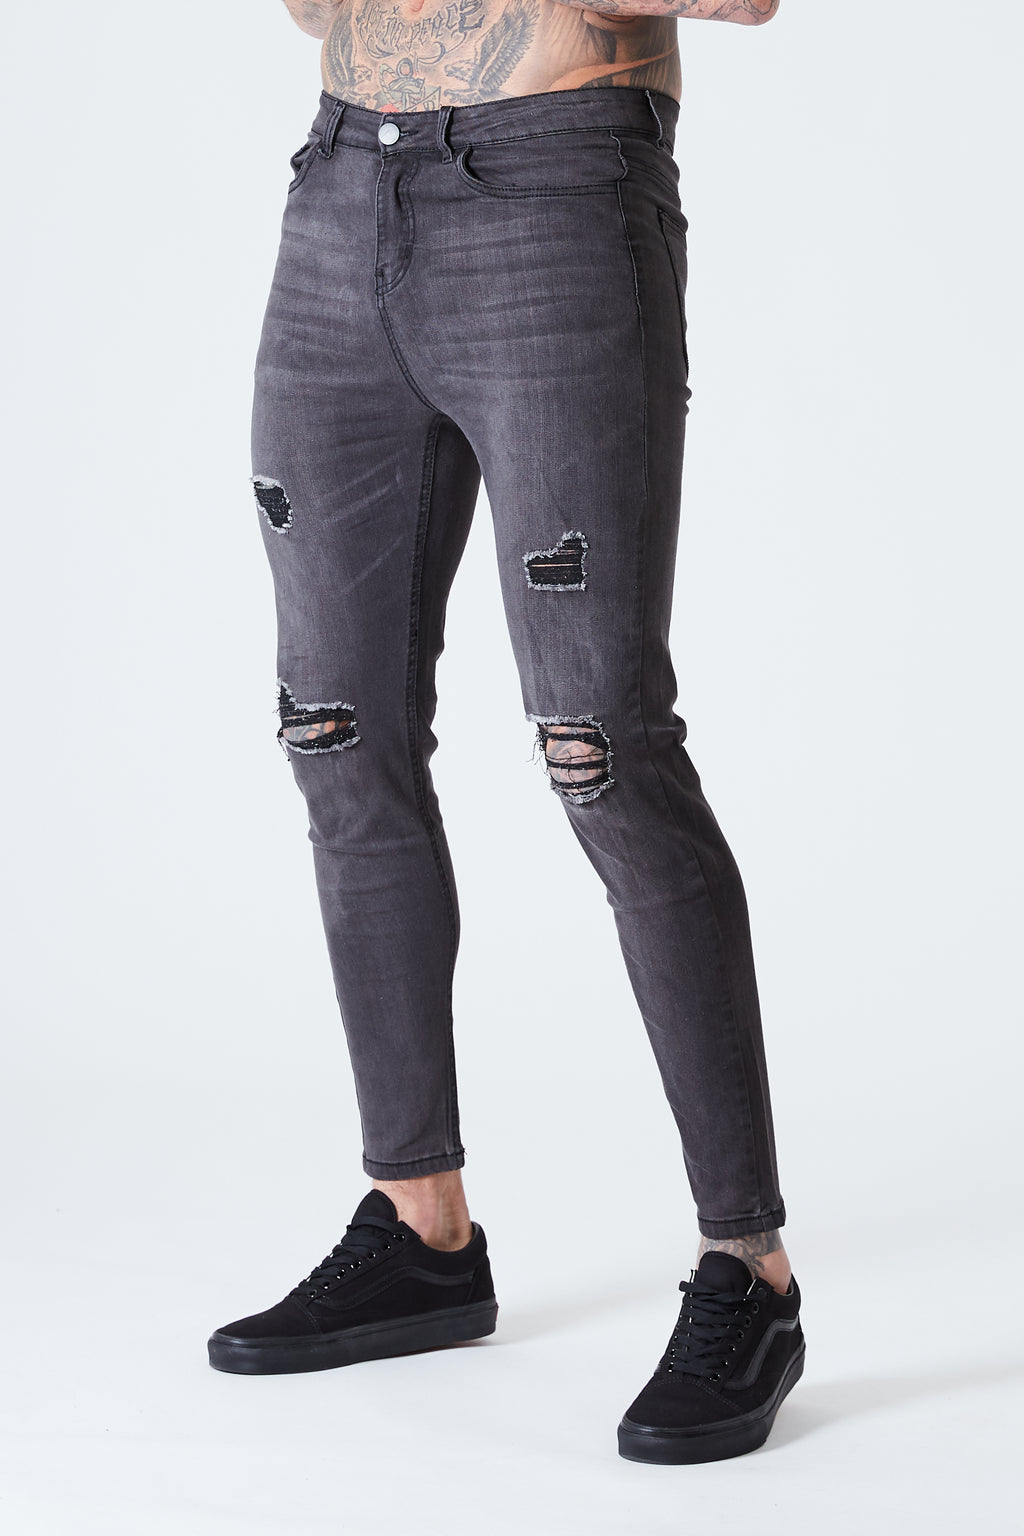 Ripped & Repaired Spray on Jeans - Grey